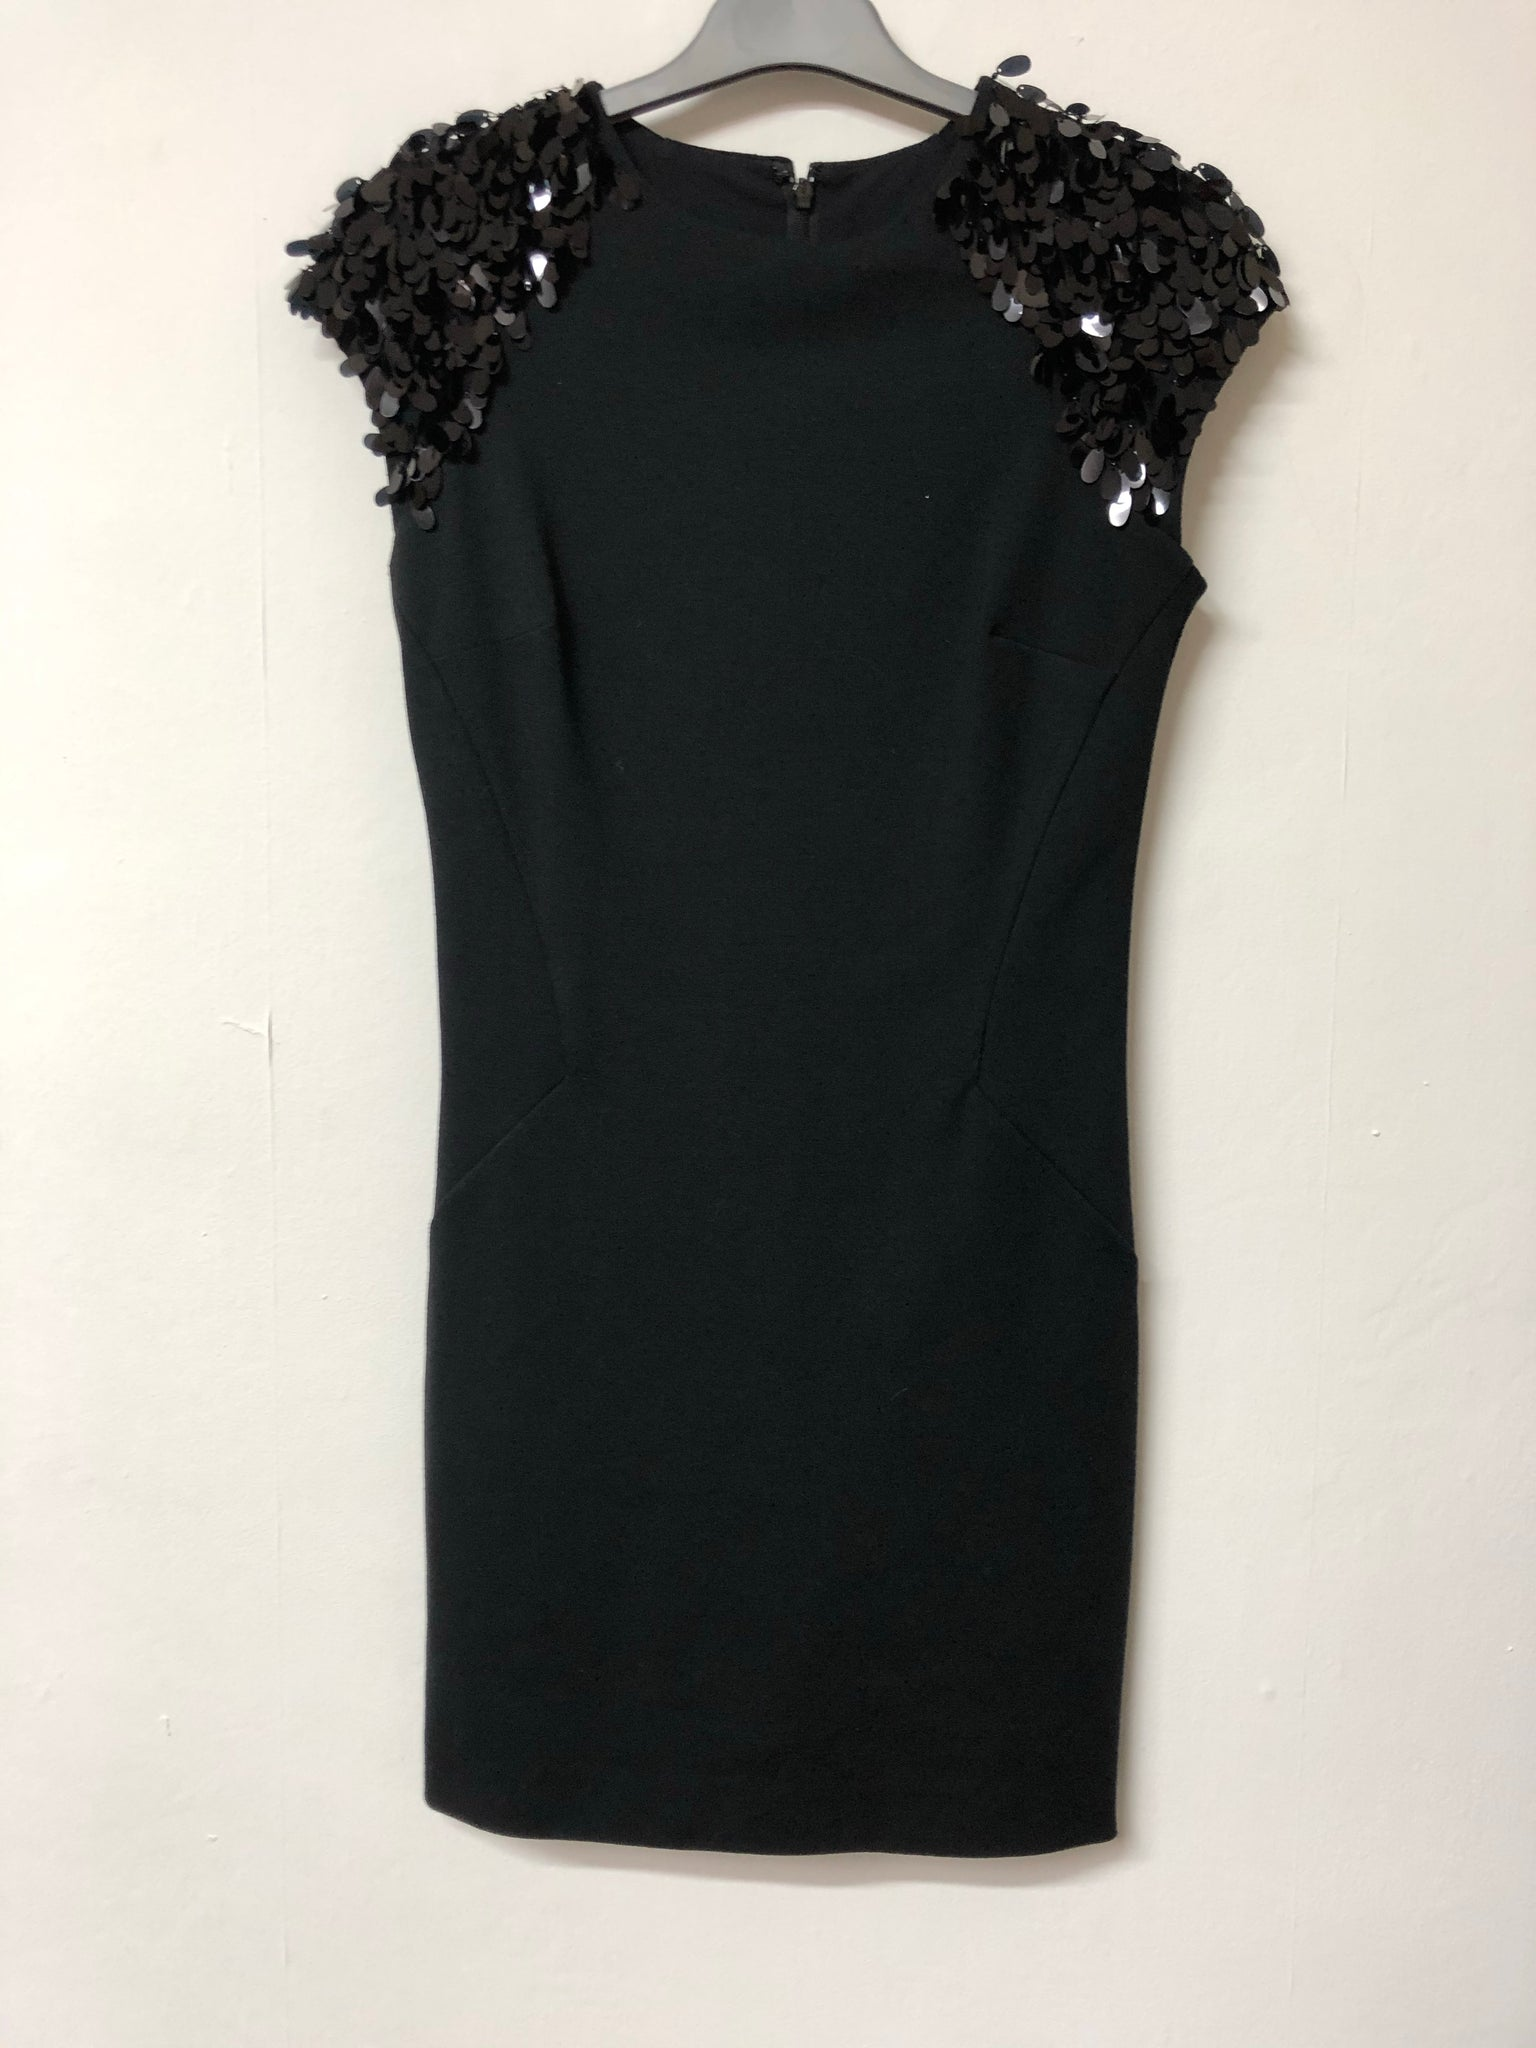 Black Michael Kors Dress Size XS